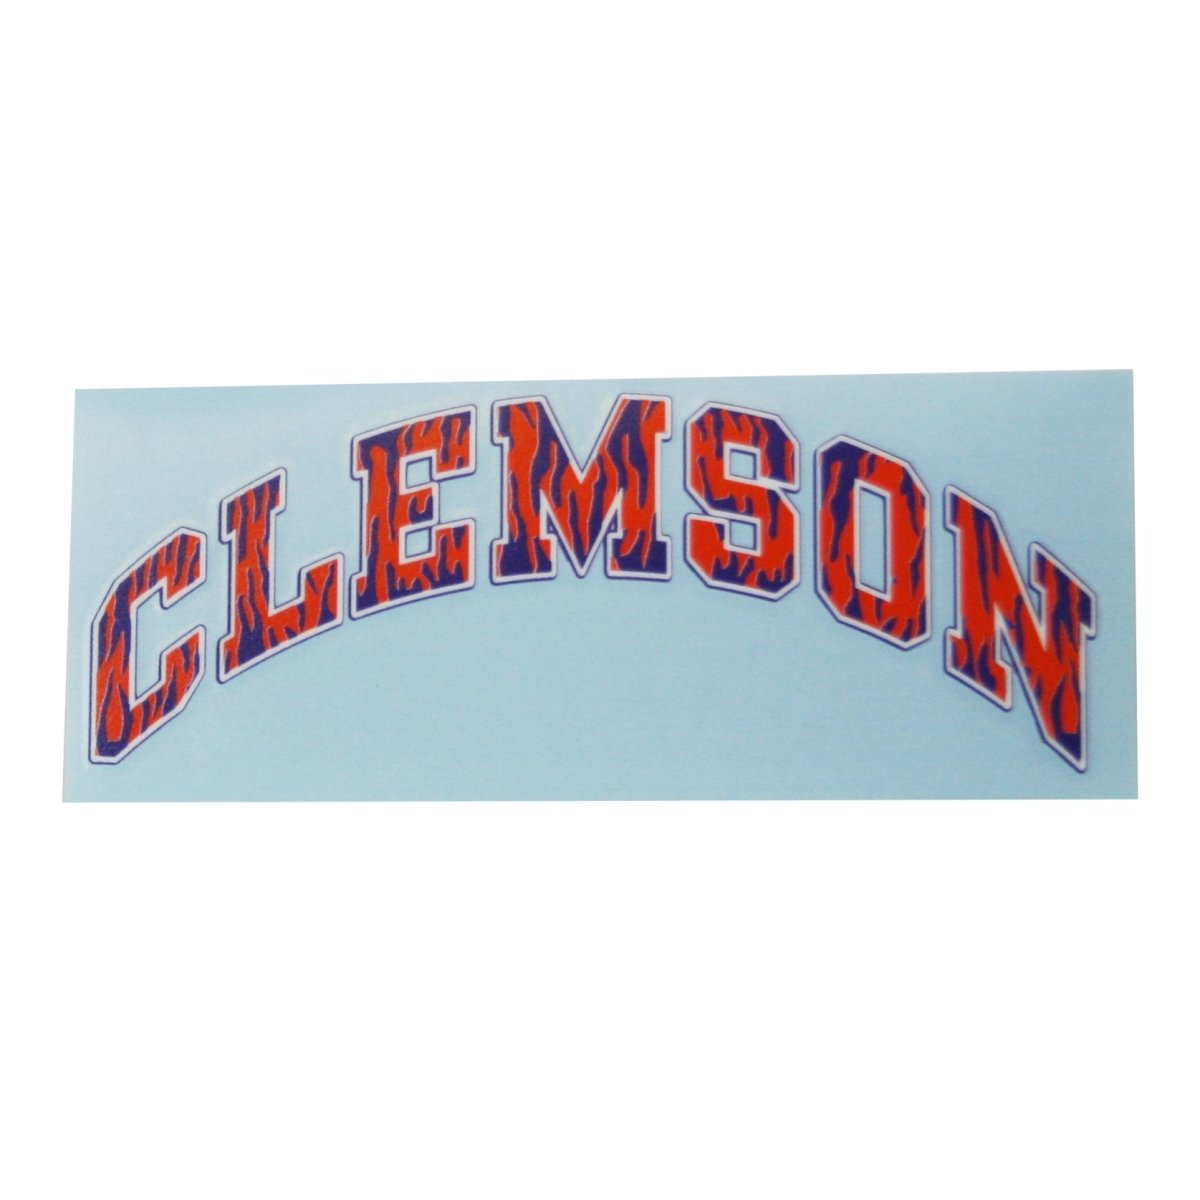 Stockdale Clemson Tigers Arch With Tiger Stripes - Mr. Knickerbocker